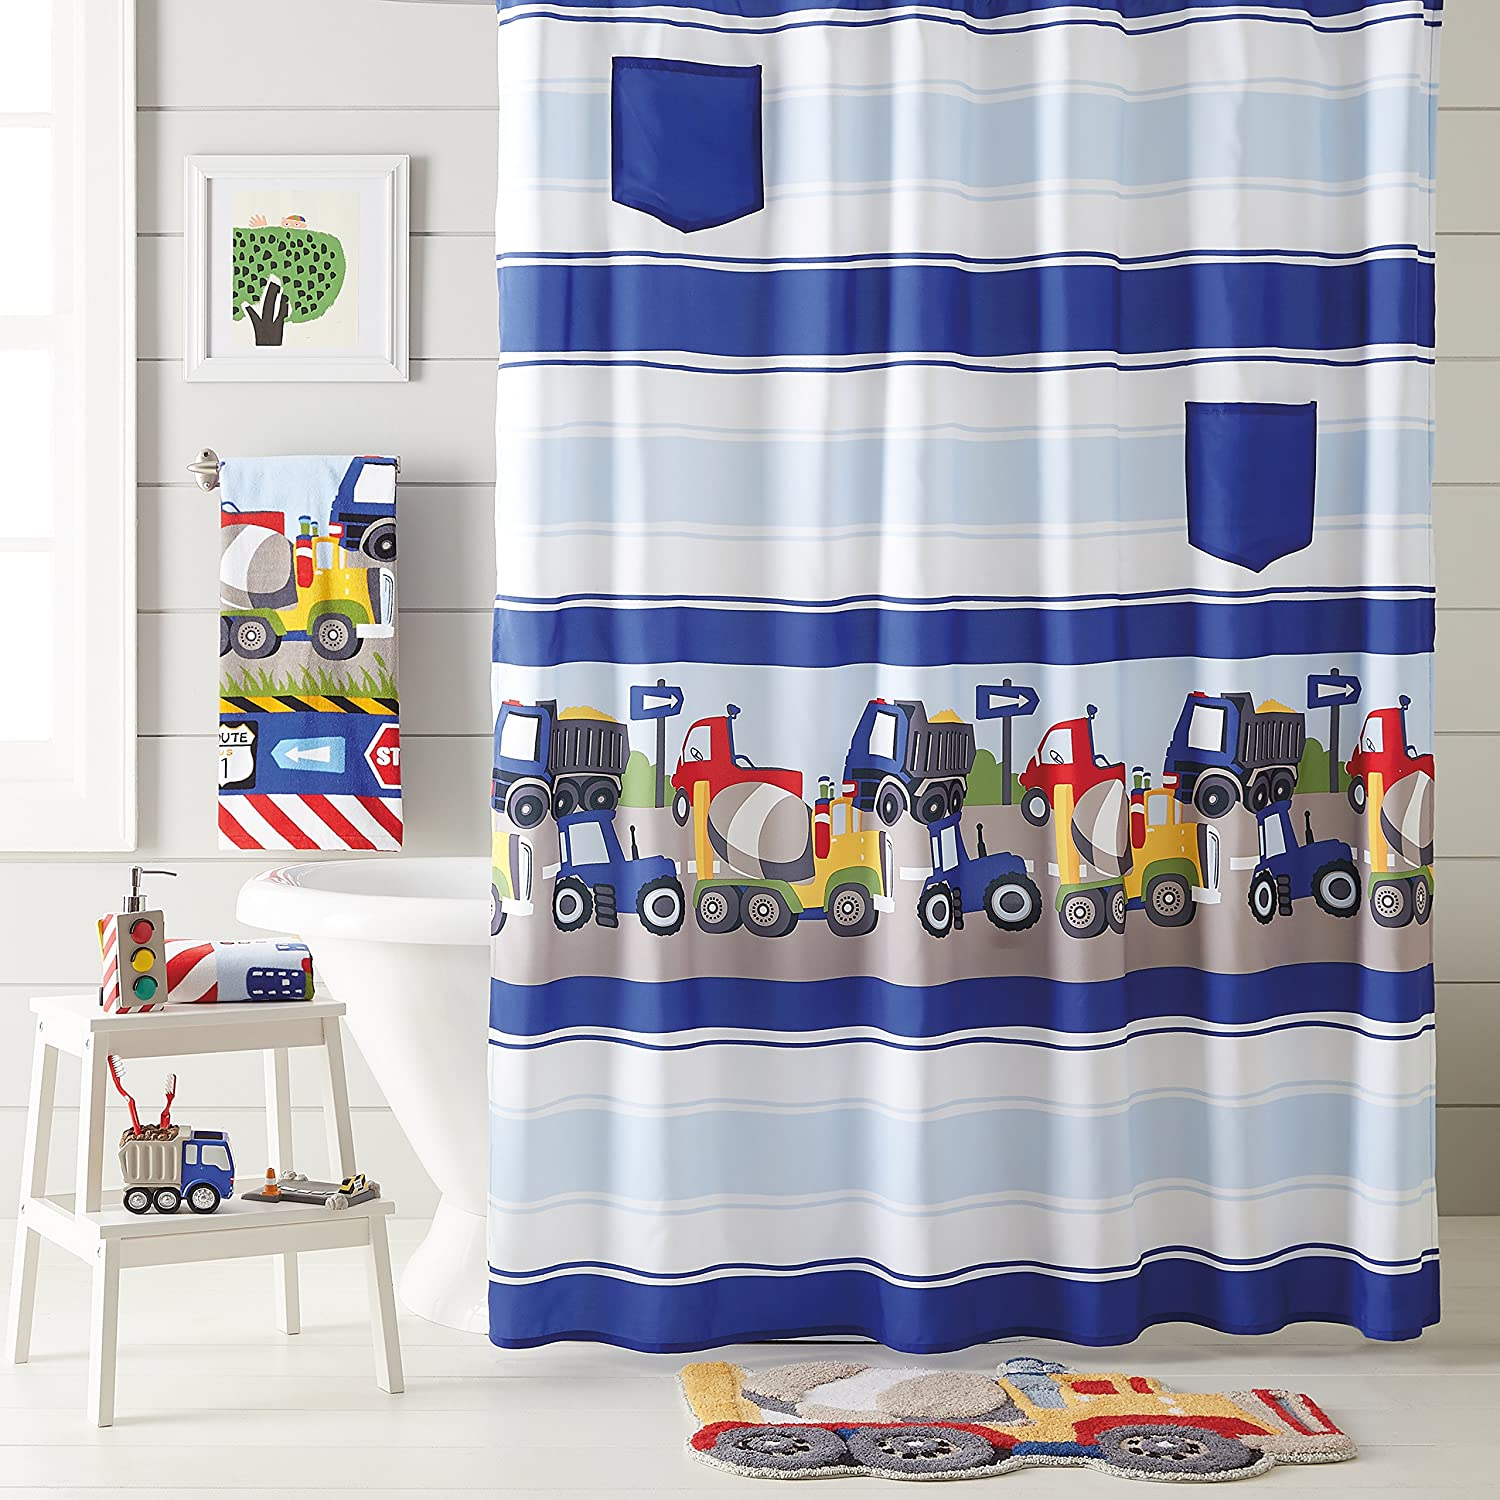 dream FACTORY Trains and Trucks Fabric Shower Curtain, 70 x 72 inches, Yellow